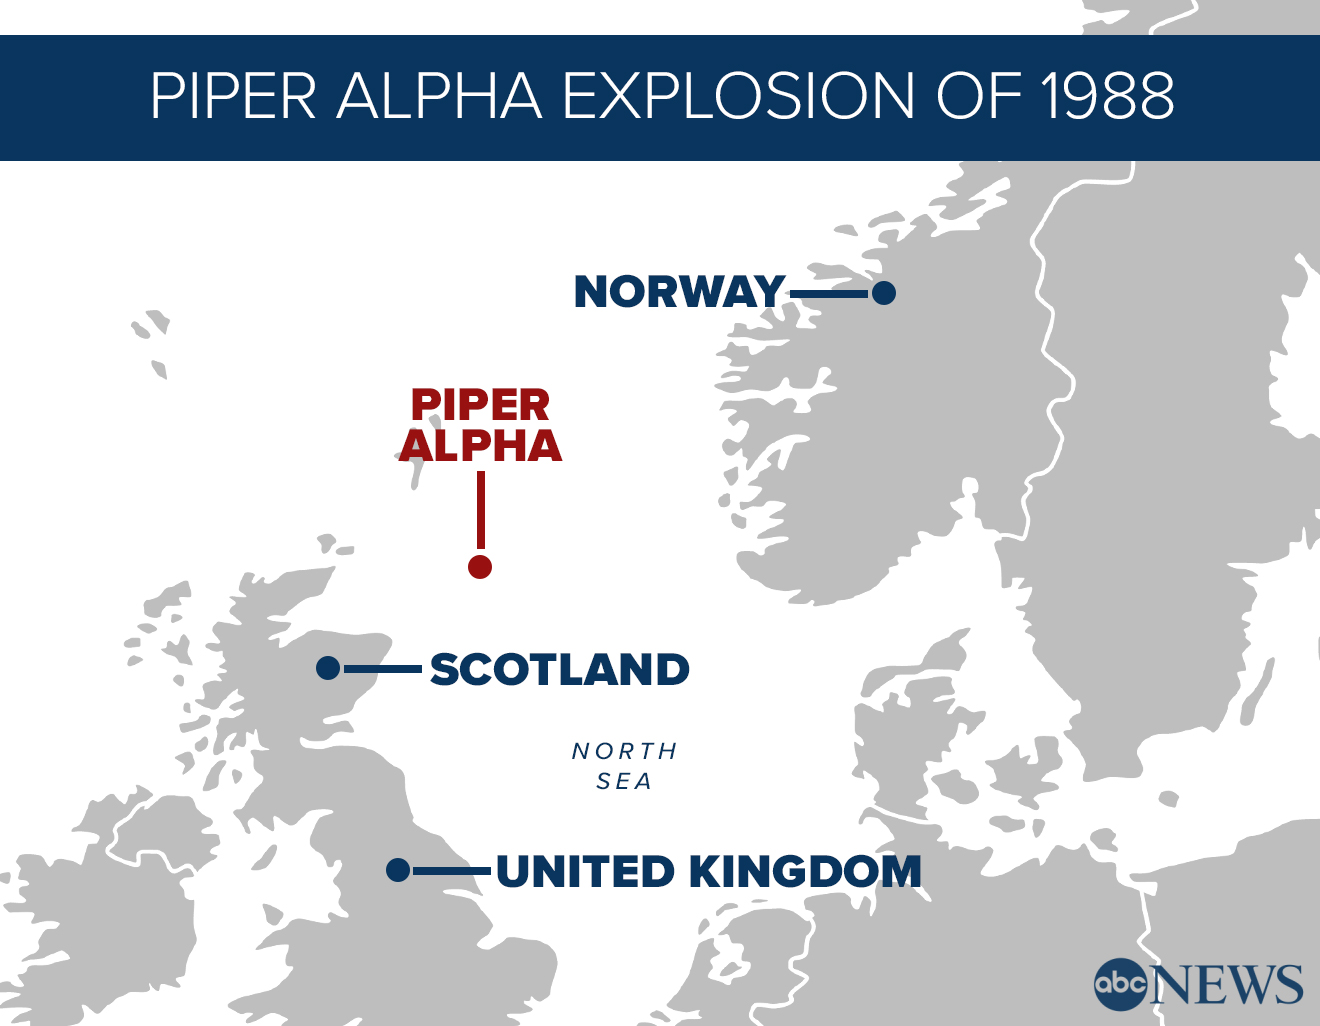 Piper Alpha Disaster Root Cause - Images All Disaster